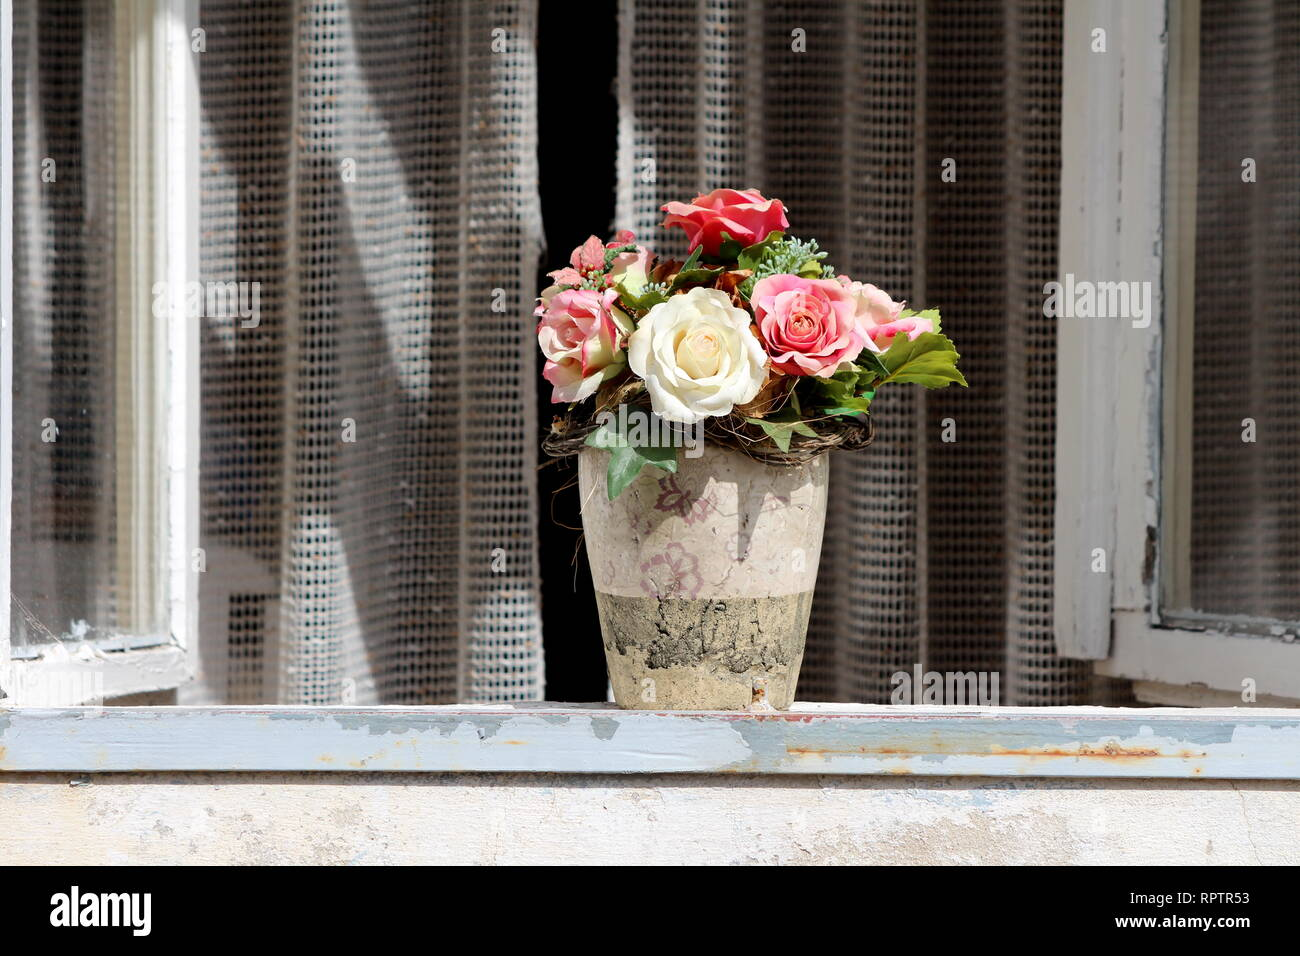 Ceramic partially broken flower vase with plastic roses in various colors on top of window seal with open windows and curtain in background - Stock Image